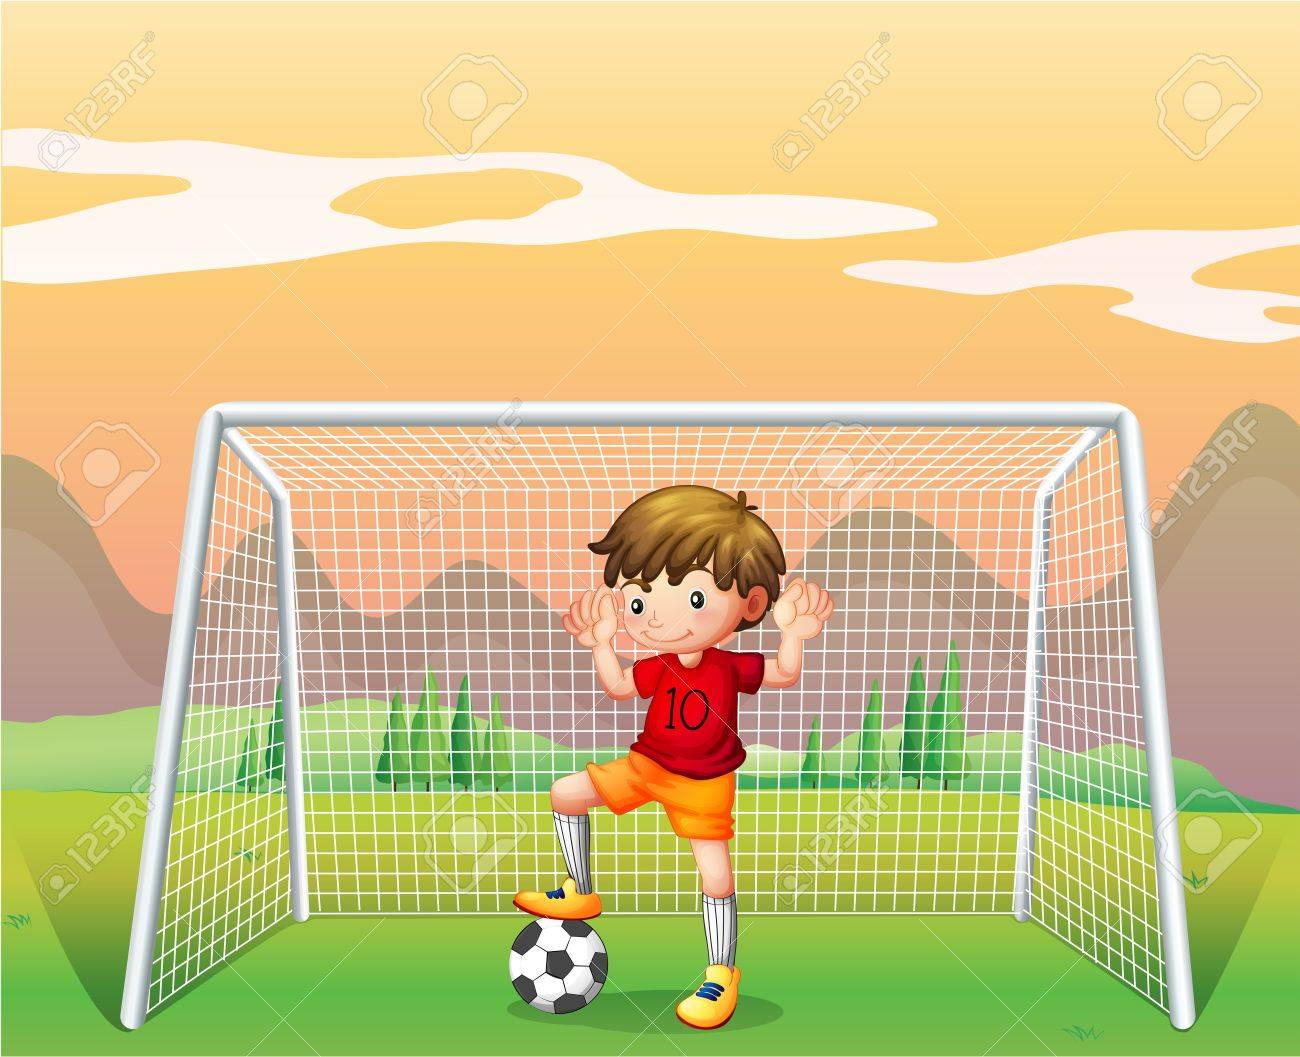 Illustration of a soccer player in a red shirt Stock Vector - 19389538